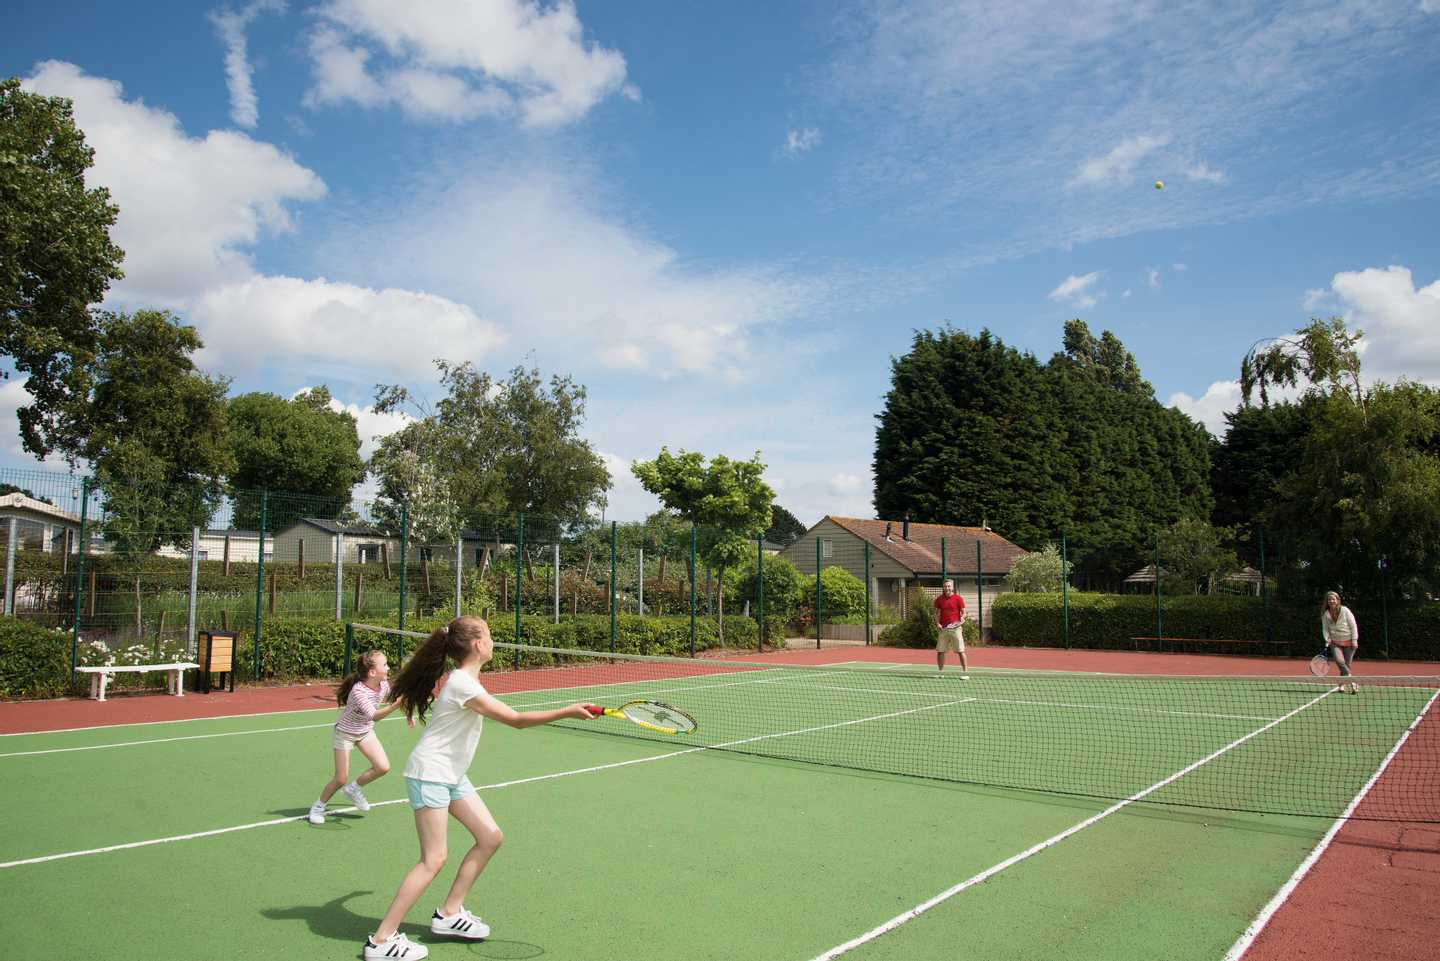 Family playing tennis at the tennis courts